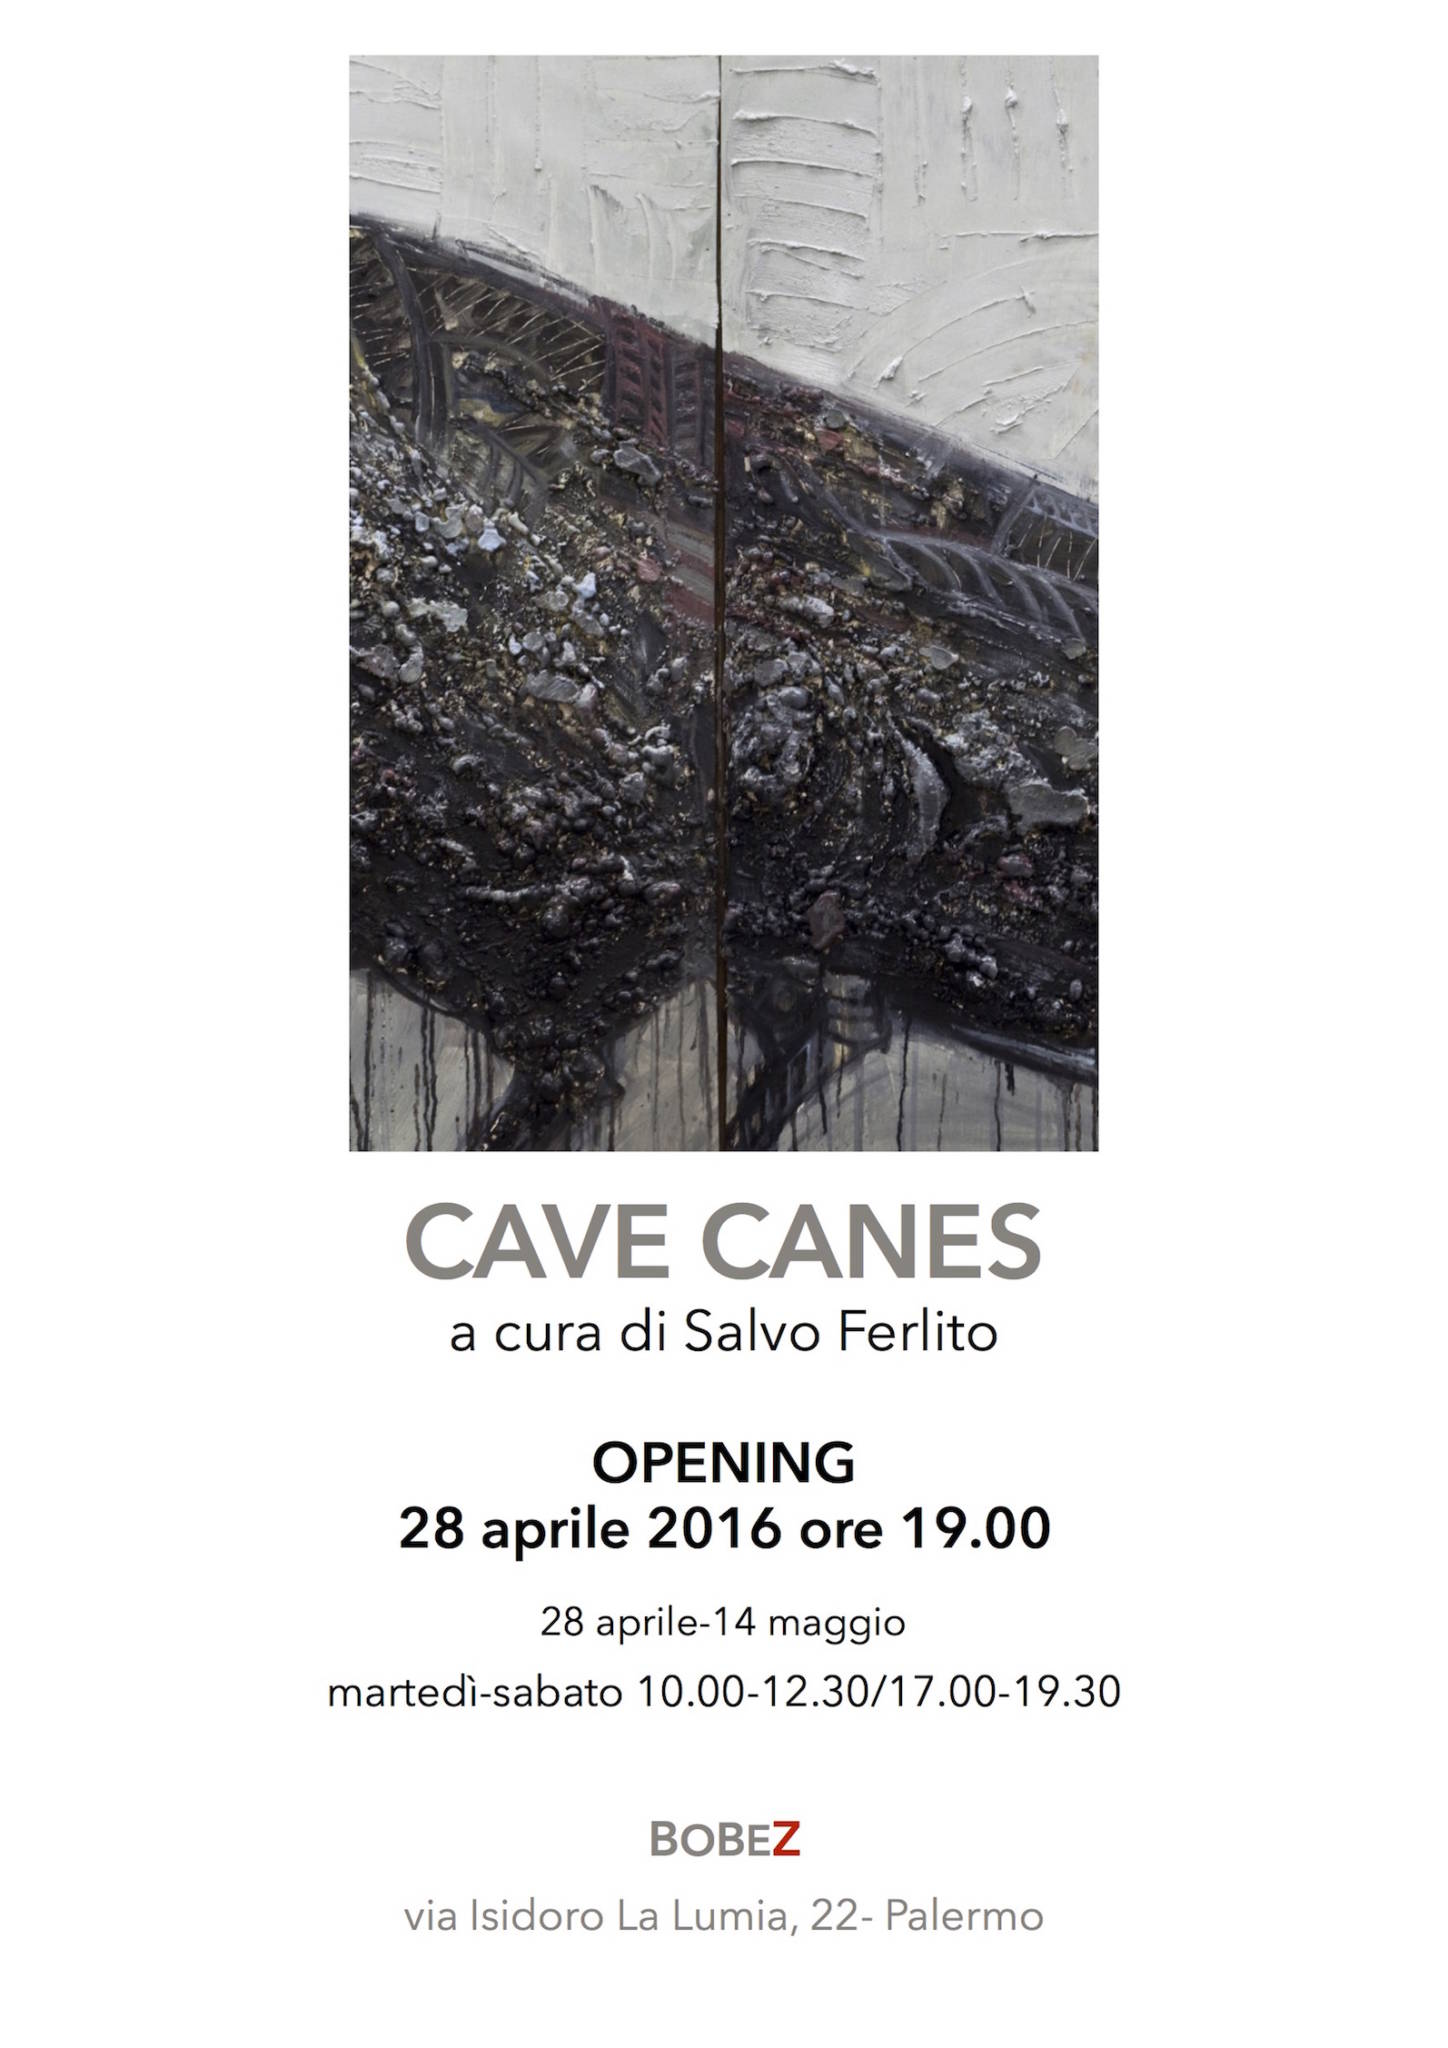 cave canes